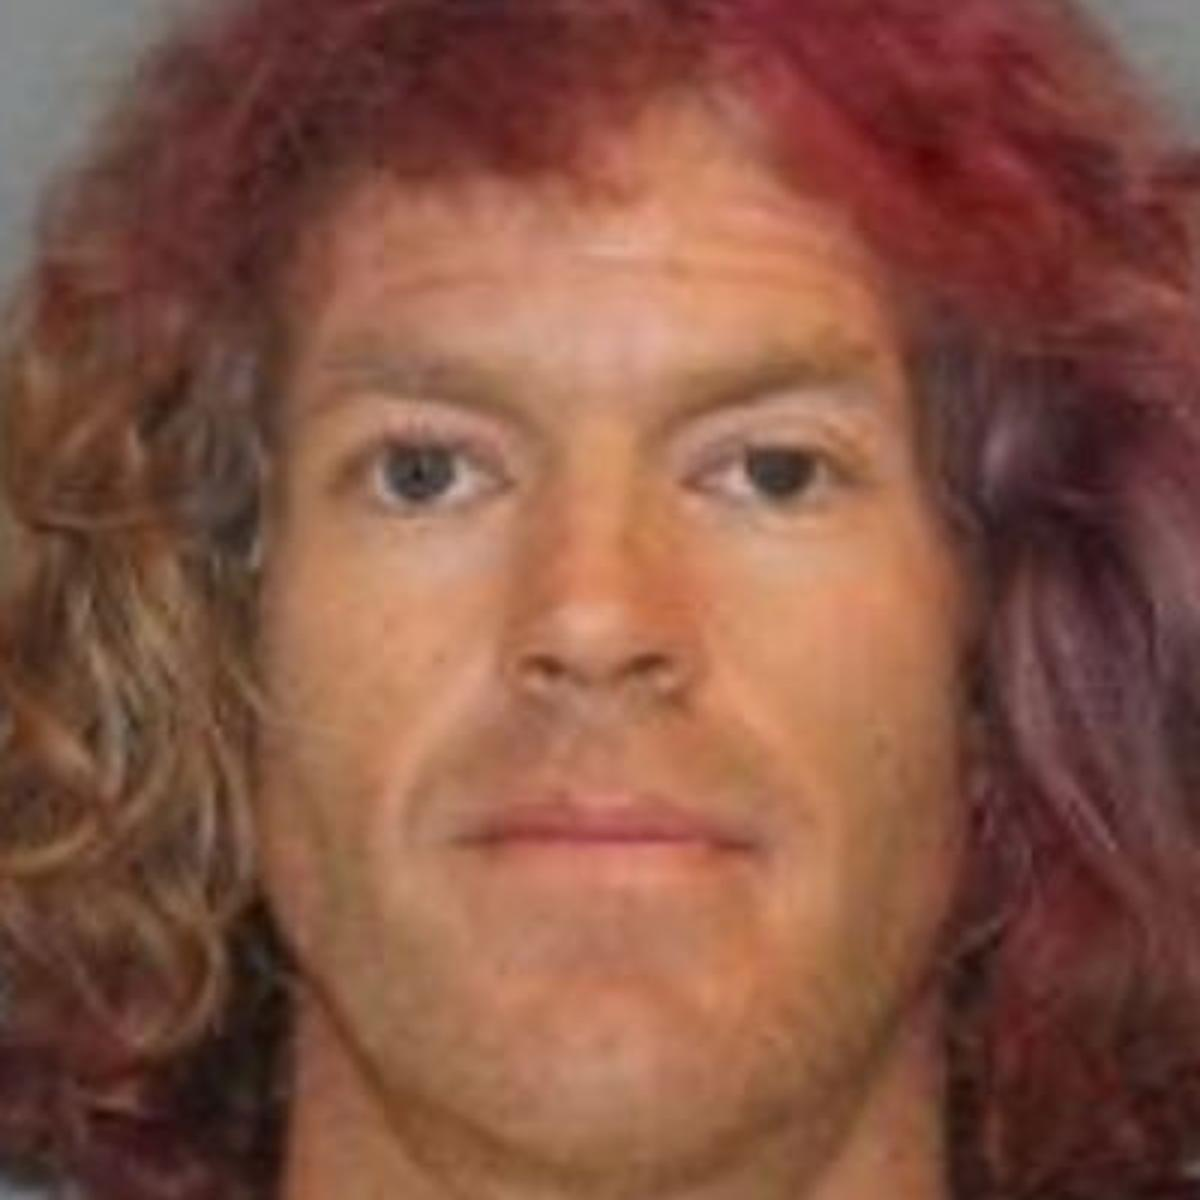 Man accused of harassing his ex-wife   Western Colorado   gjsentinel com